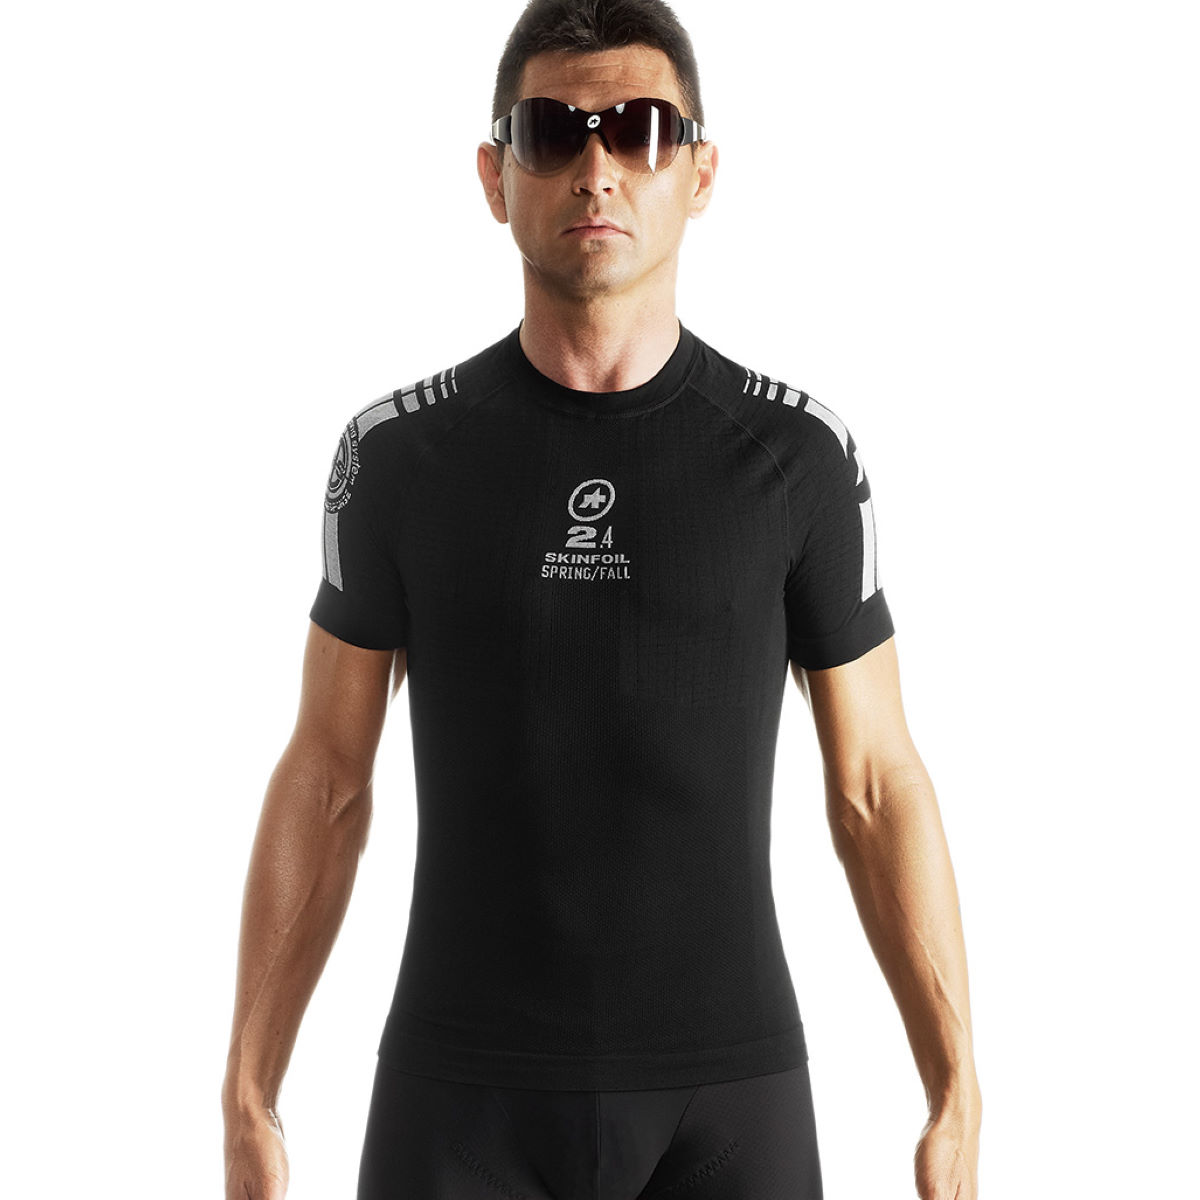 Assos new ss skinfoil spring fall s7 base layer base layers black ss15 ave416bk0